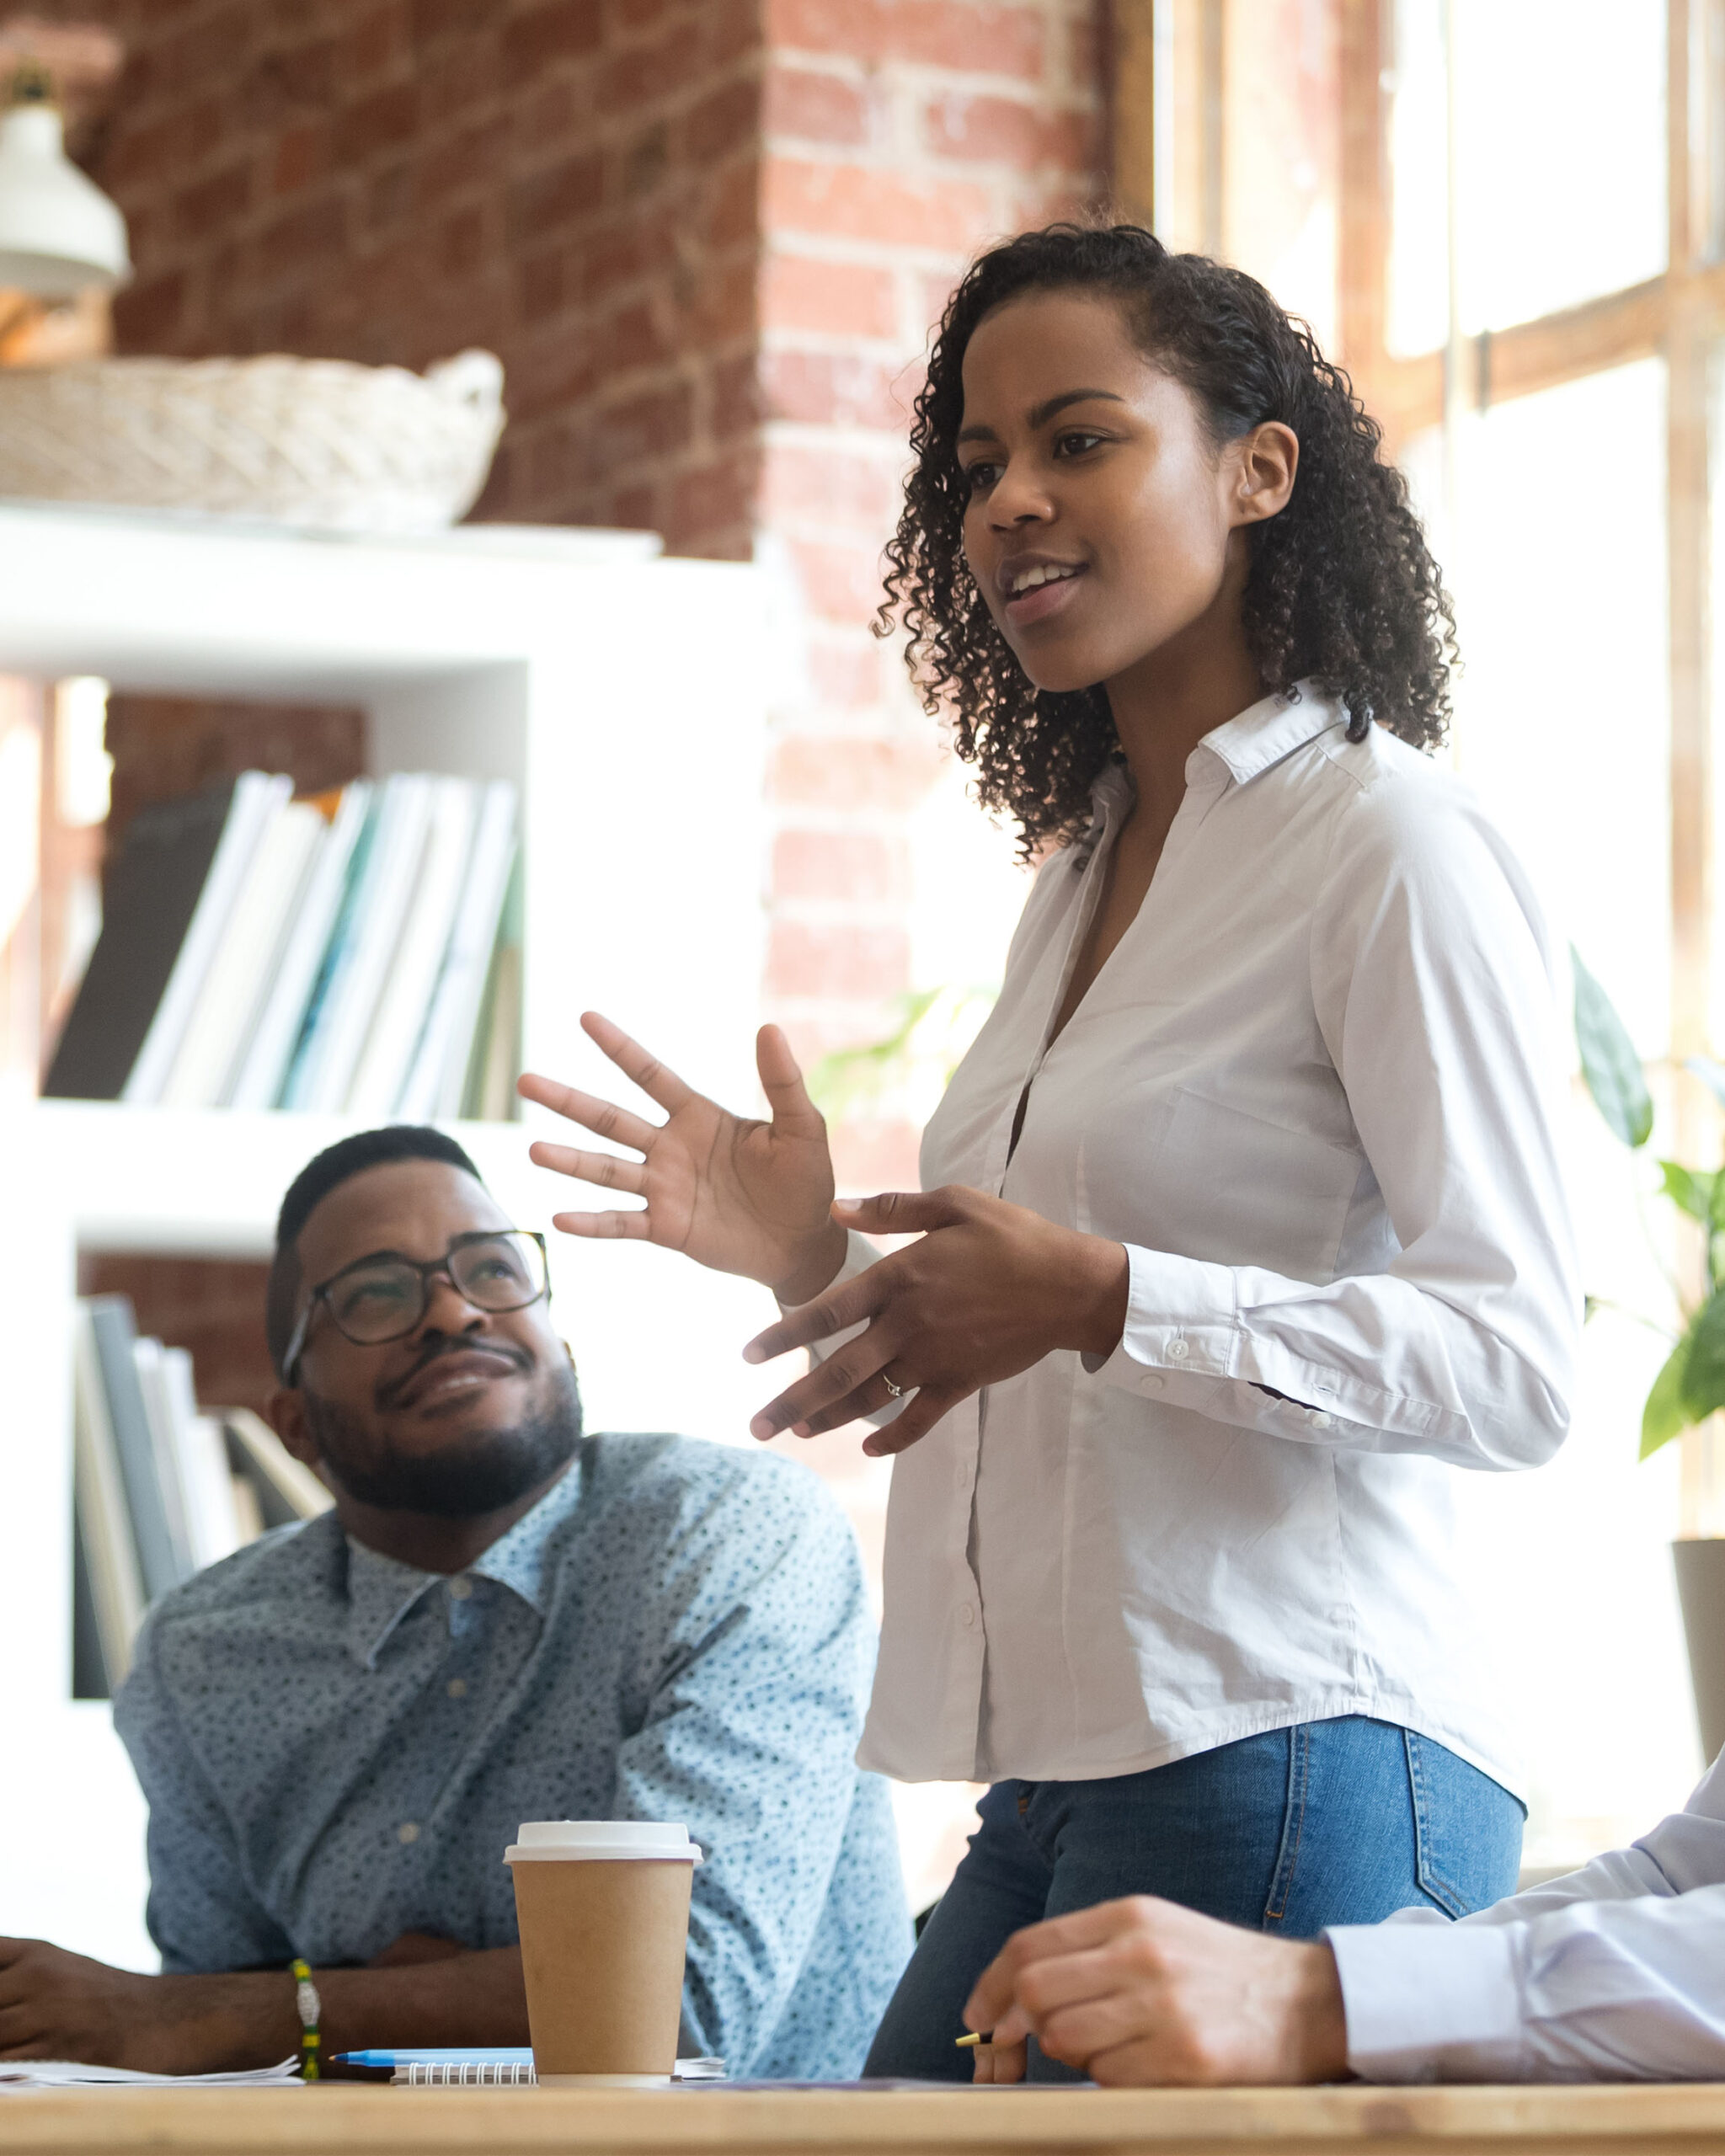 Image of young African American woman presenting to colleagues at a work meeting